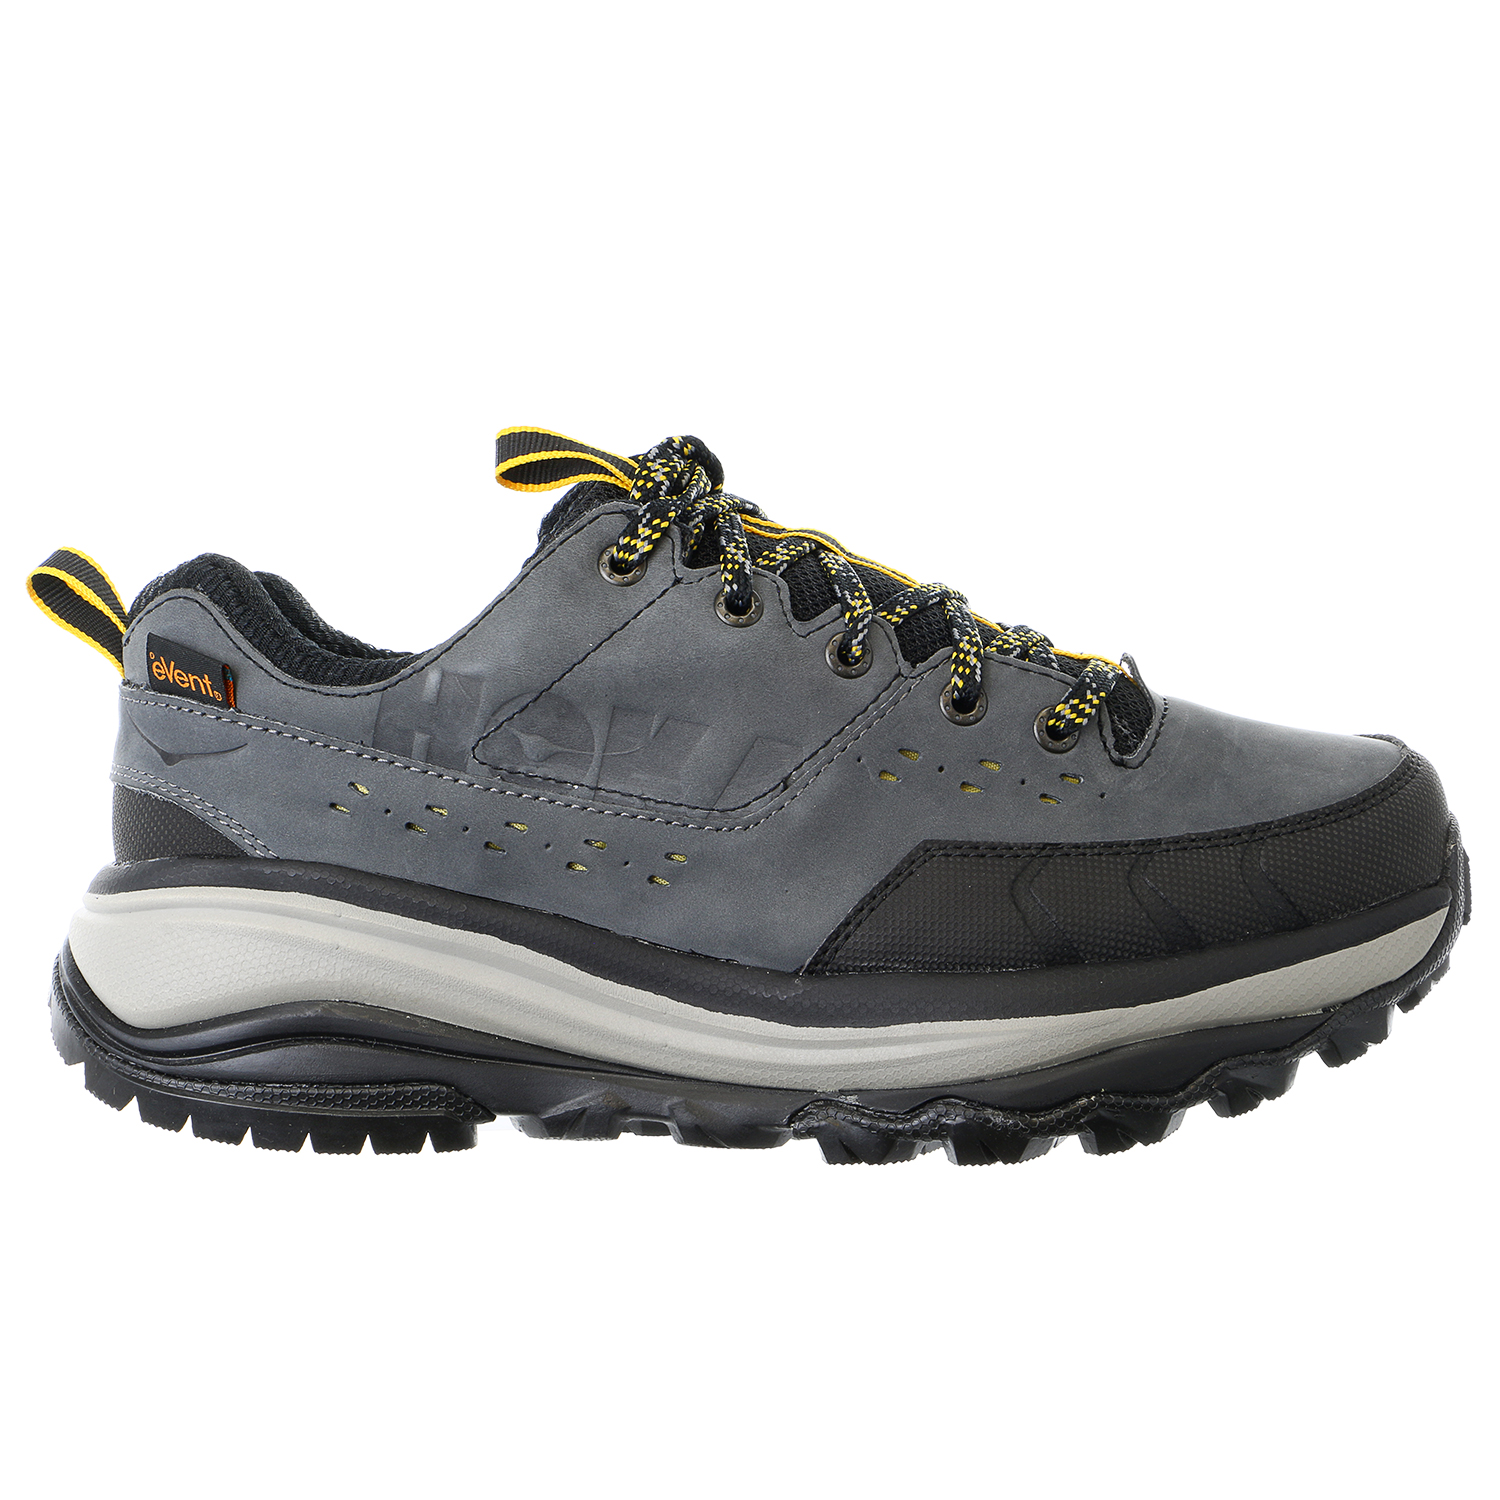 HOKA One One Tor Summit Waterproof Hiking Leather Sneaker Boot - Mens